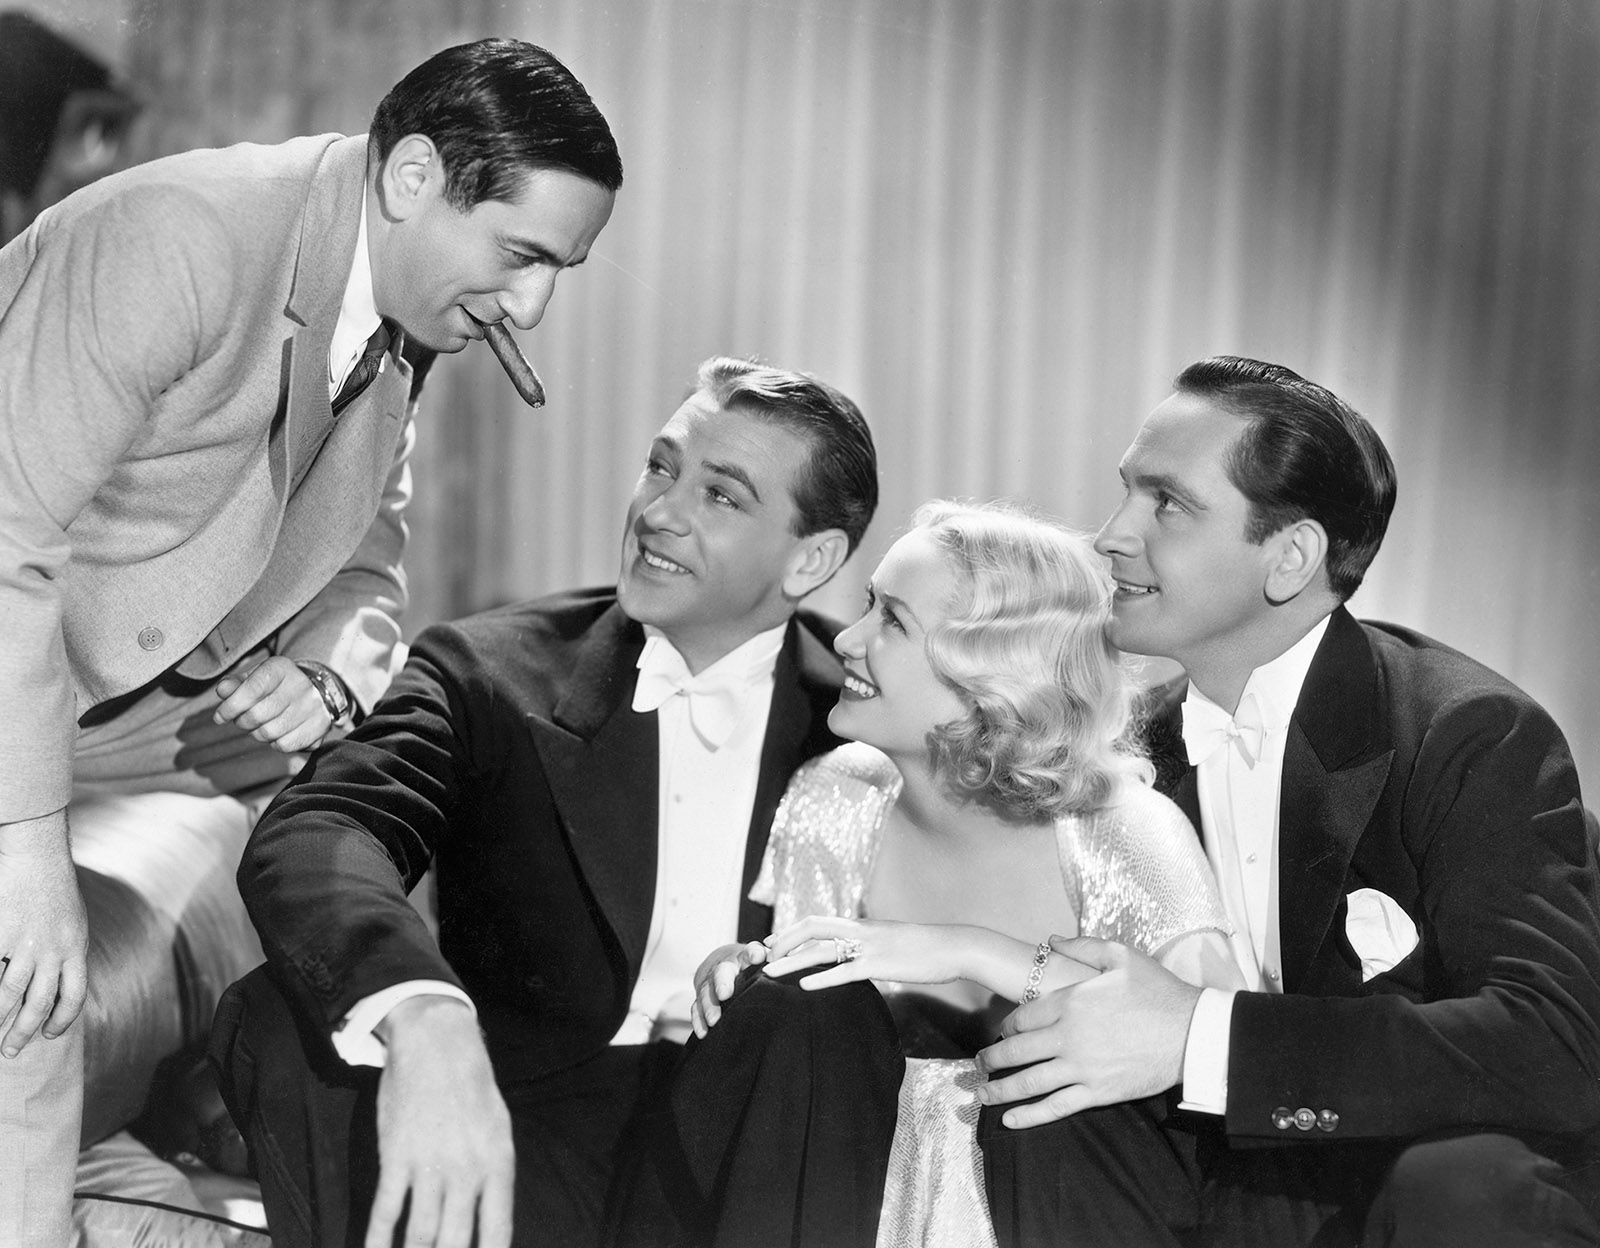 Ernst Lubitsch, Gary Cooper, Miriam Hopkins, and Fredric March on the set of Design for Living, 1933